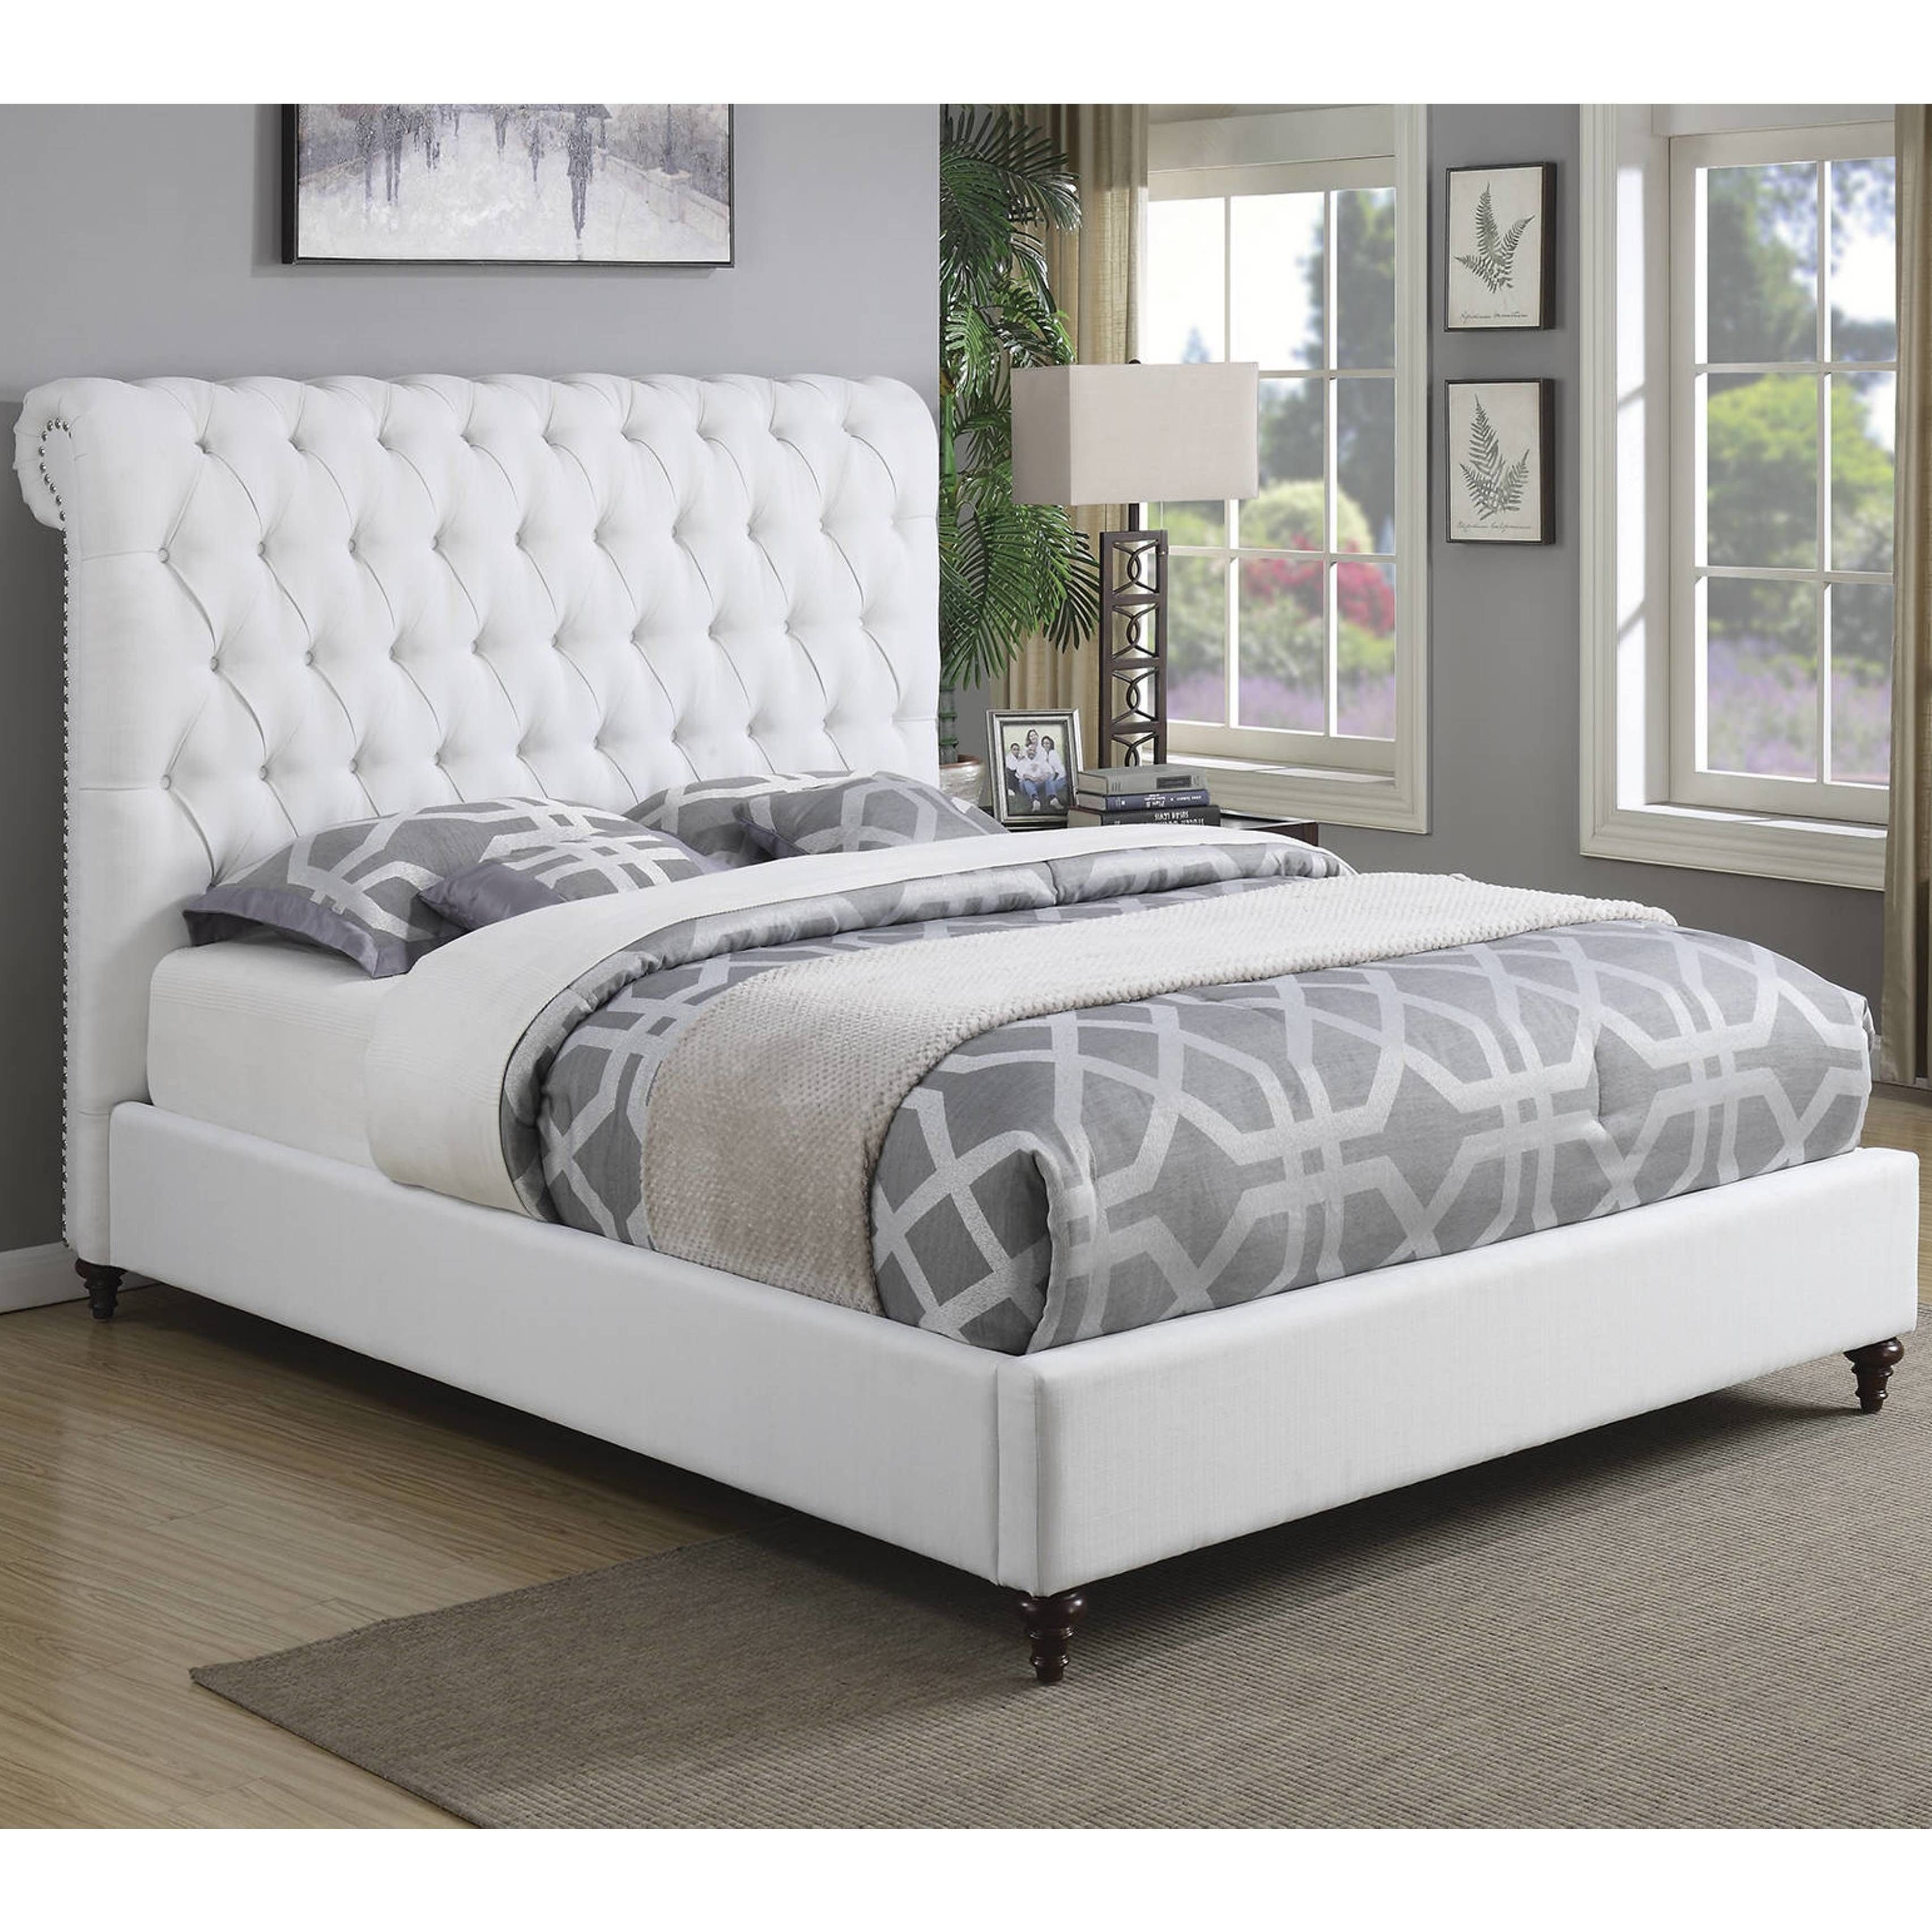 Modern Design Upholstered Bed With Diamond On Tufted